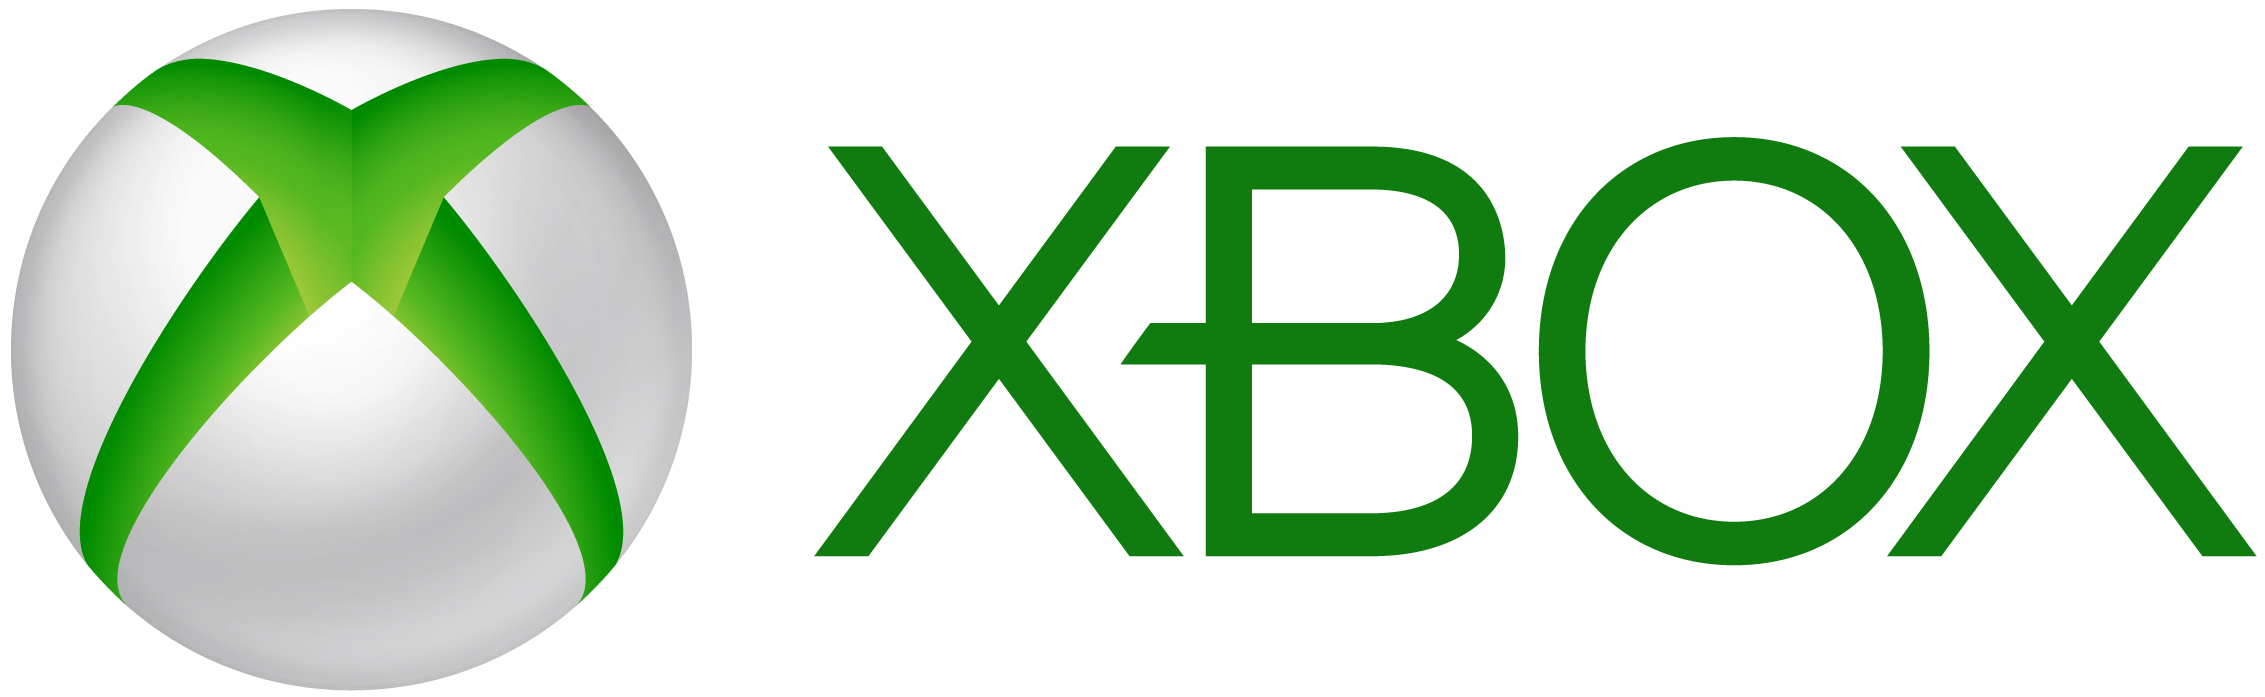 Xbox 2013 Logo ALIEN SHOWDOWN